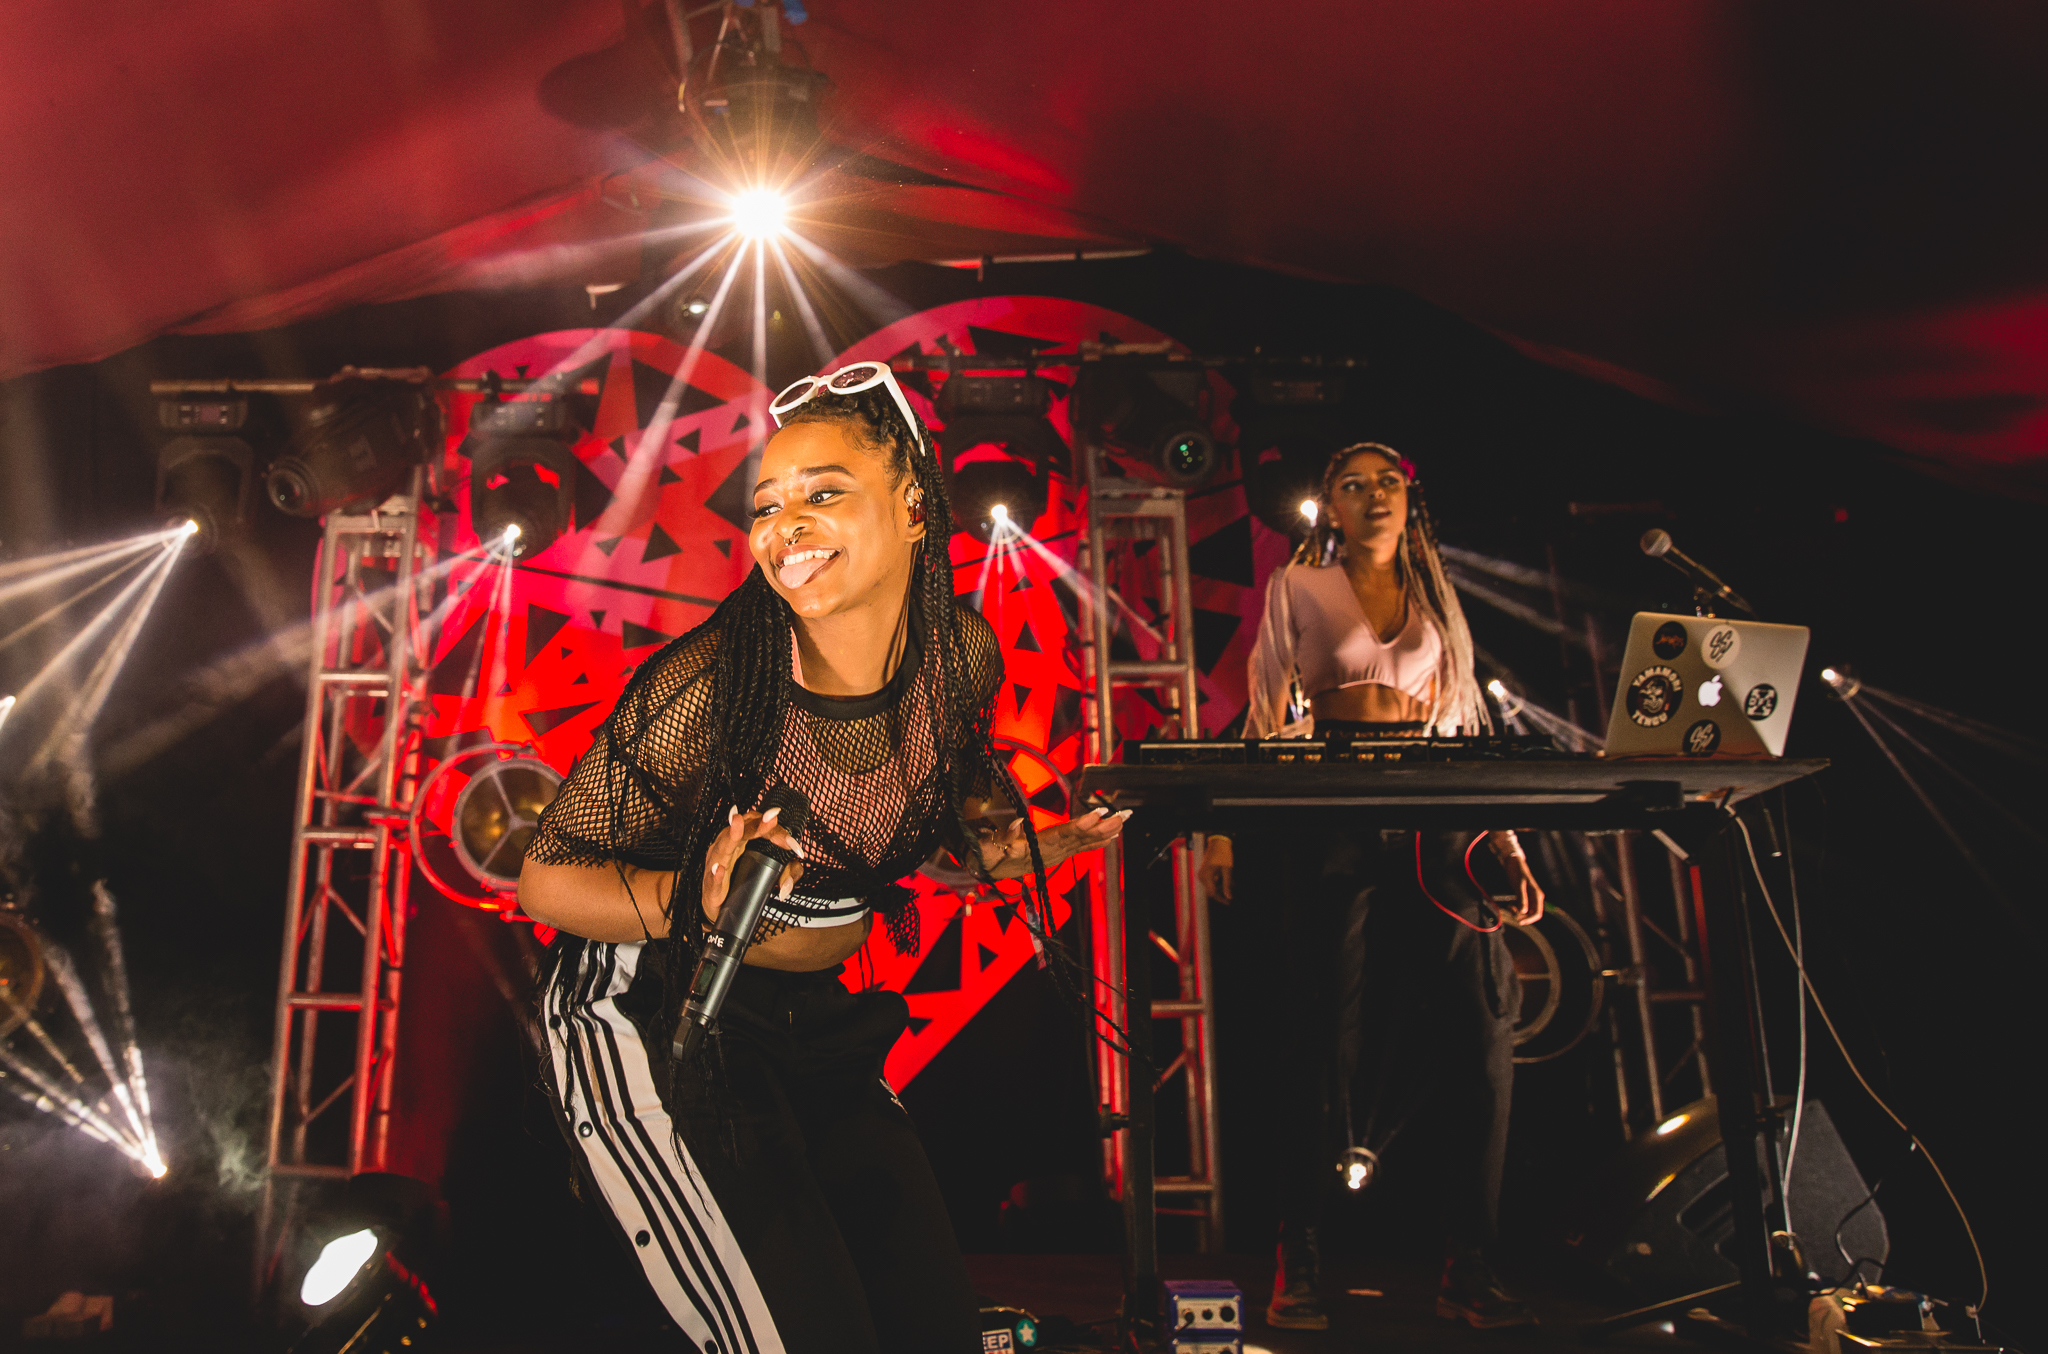 Electric Picnic 2017 - Day One